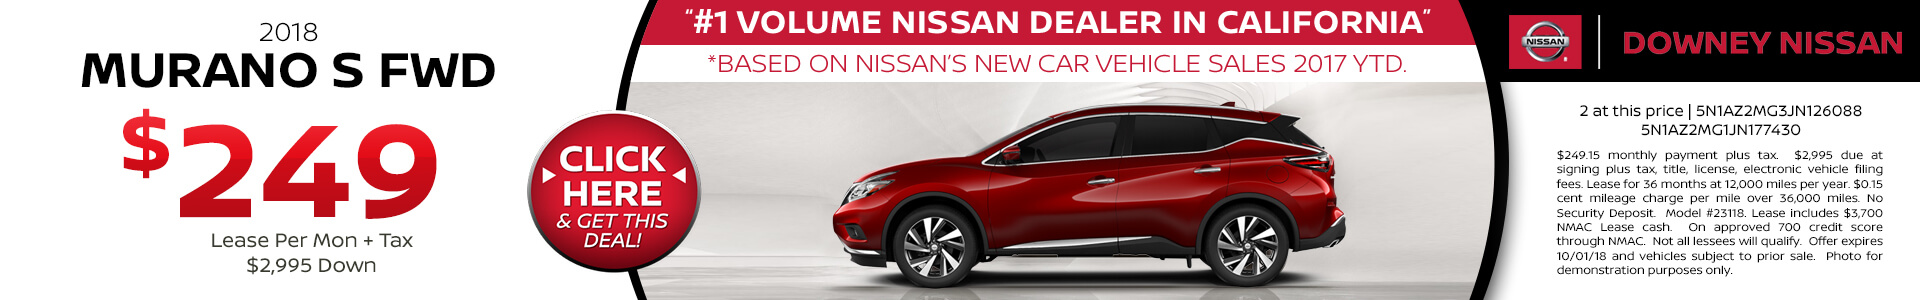 2018 Murano - Lease for $249